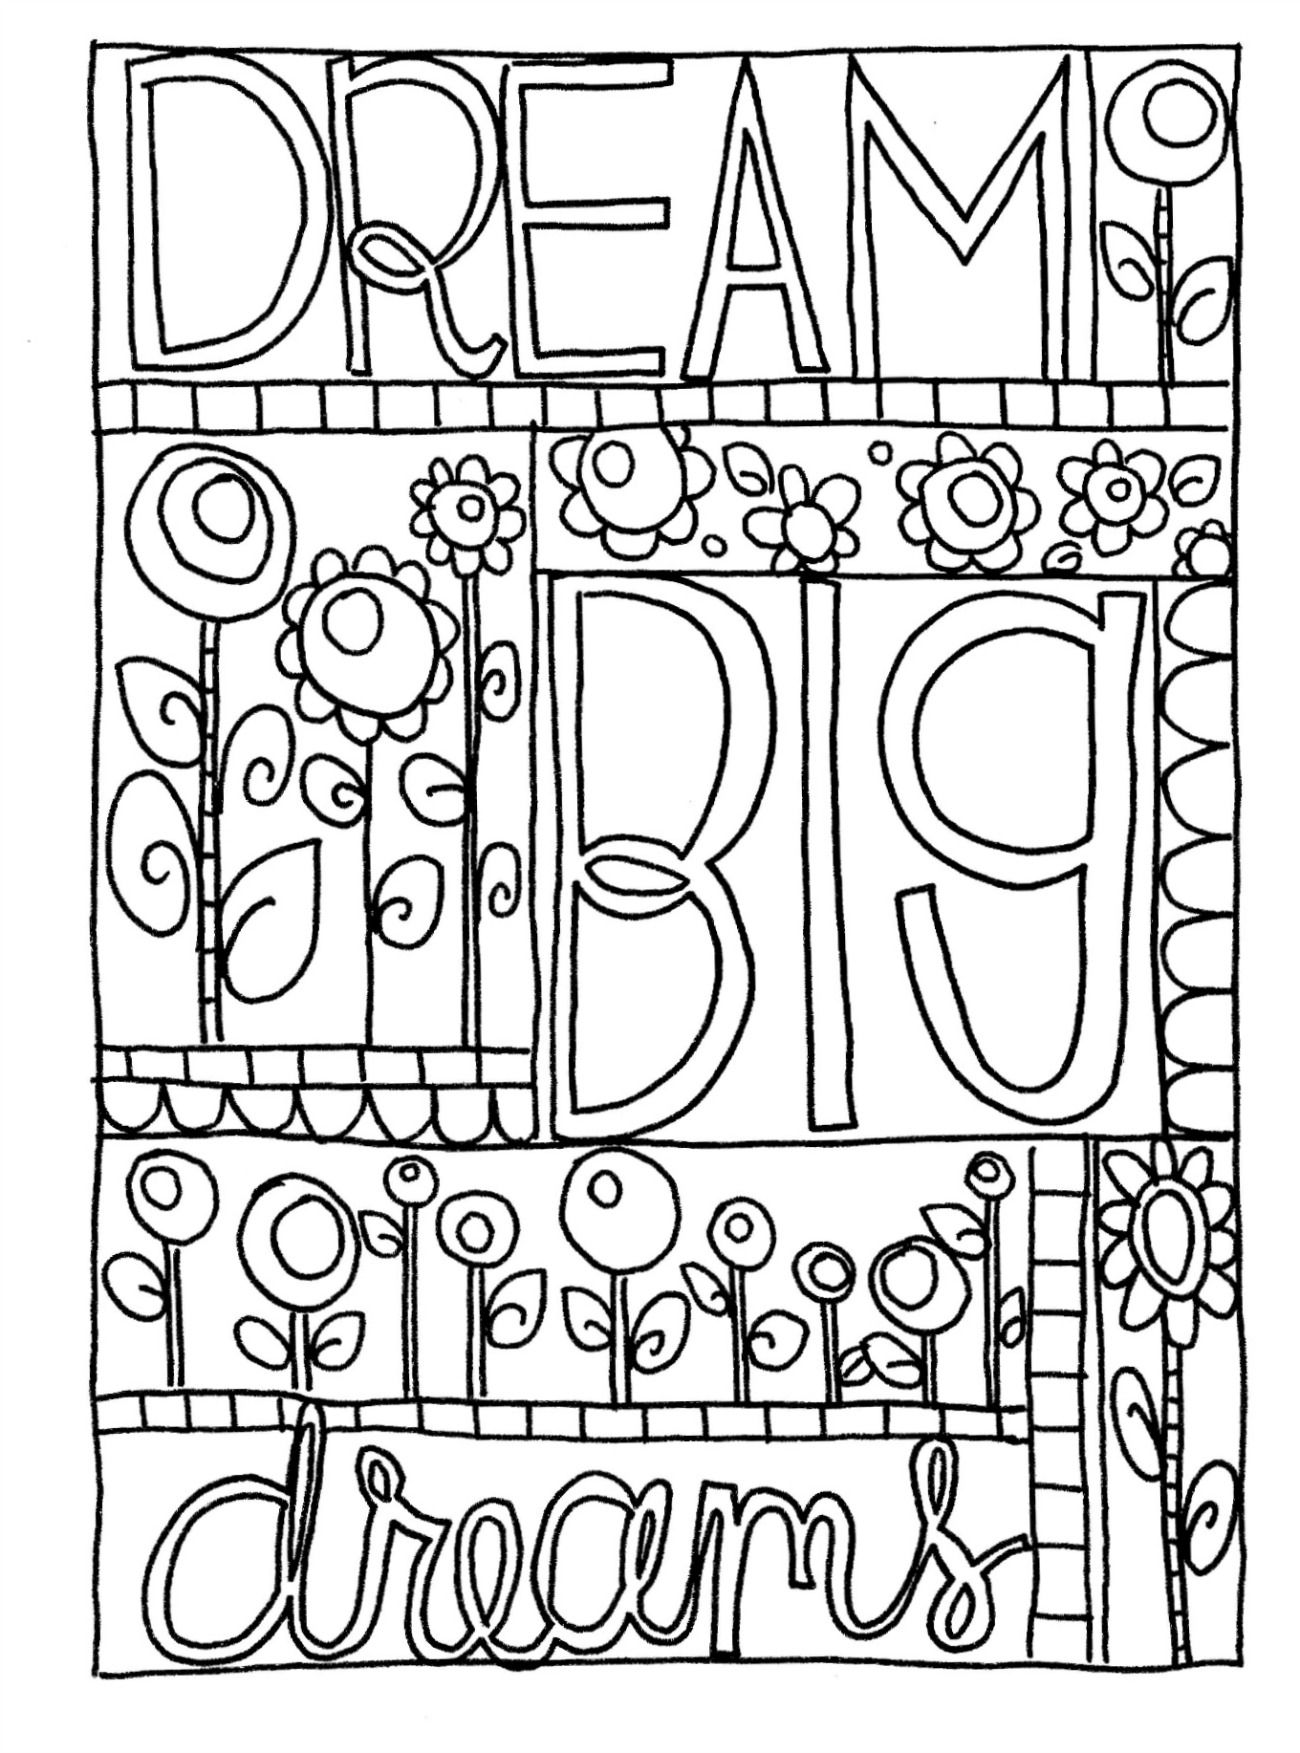 Doodle coloring pages for kids coloring home for Doodle coloring pages